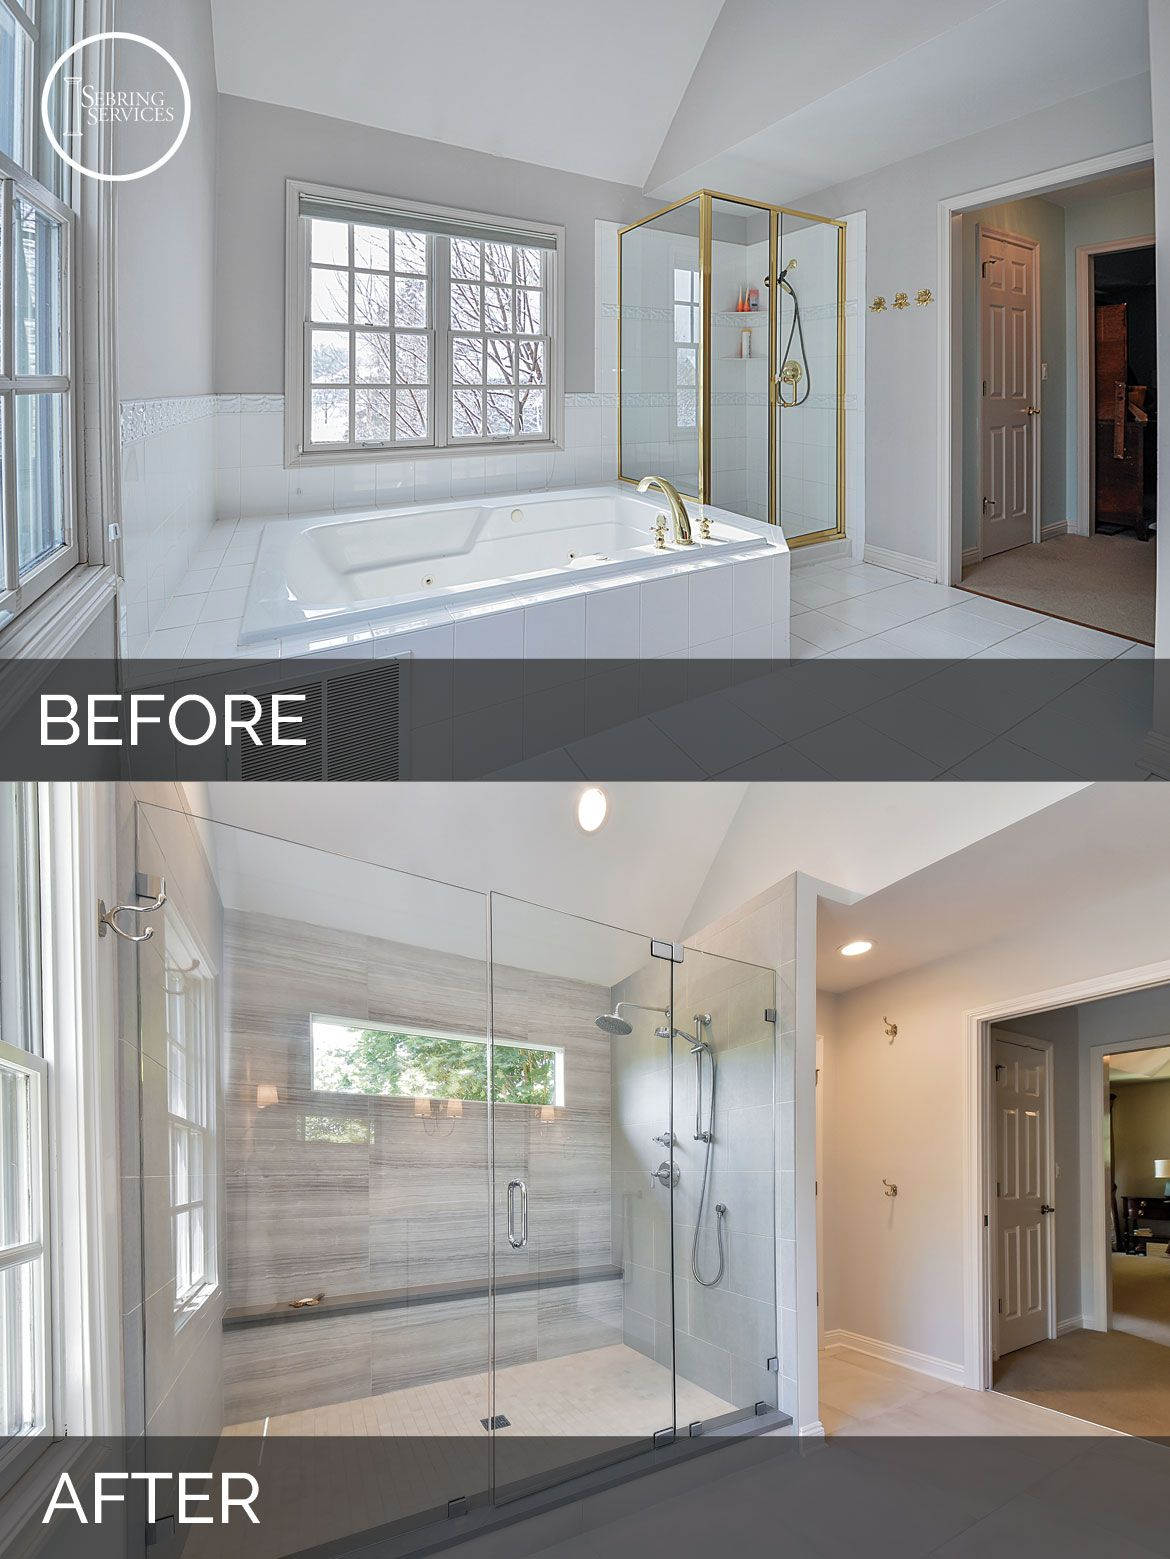 Remodel Bathroom With Window In Shower carl & susan's master bath before & after pictures | master